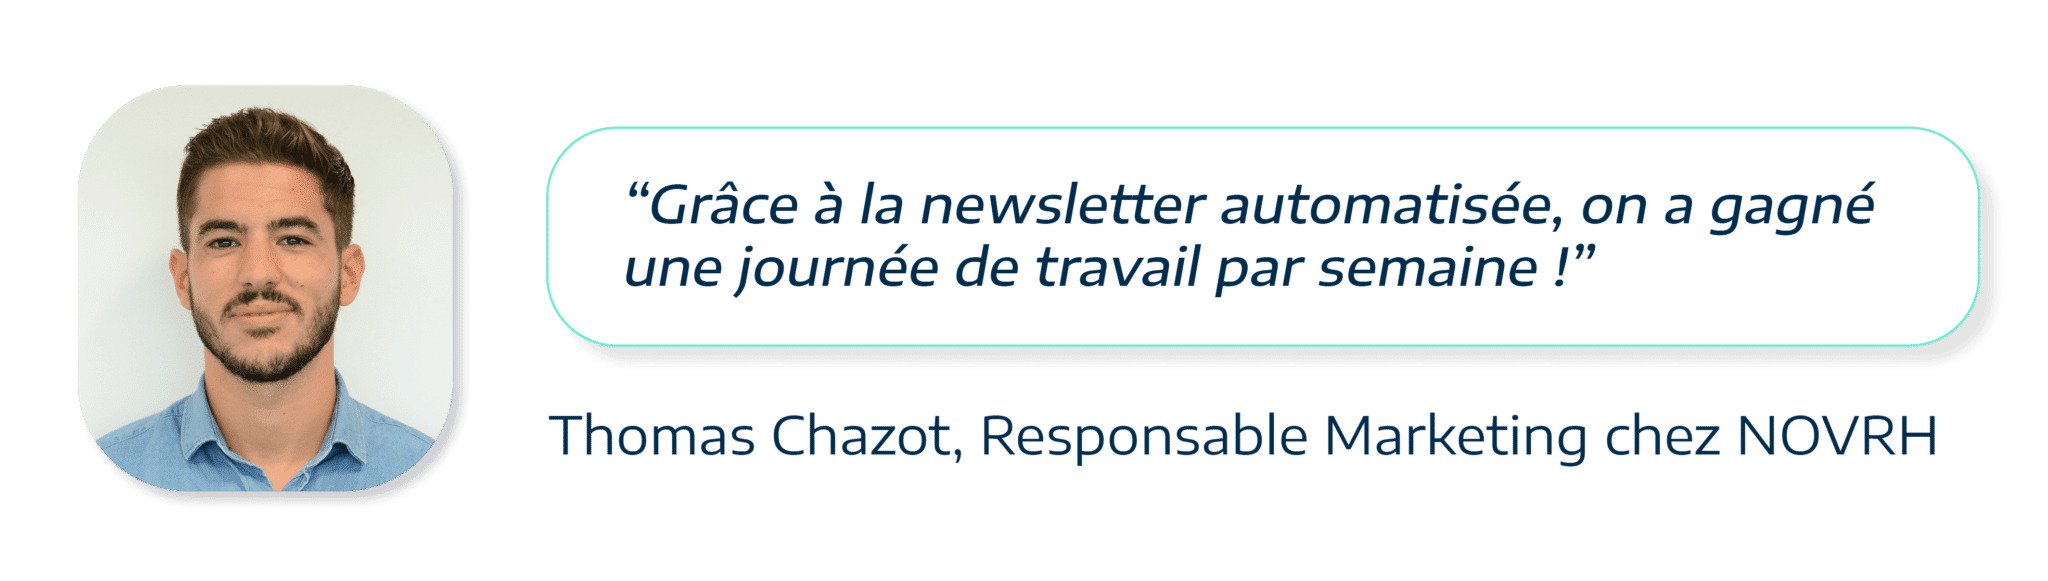 témoignage de Thomas Chazot, responsable marketing chez NOVRH, sur la newsletter Plezi